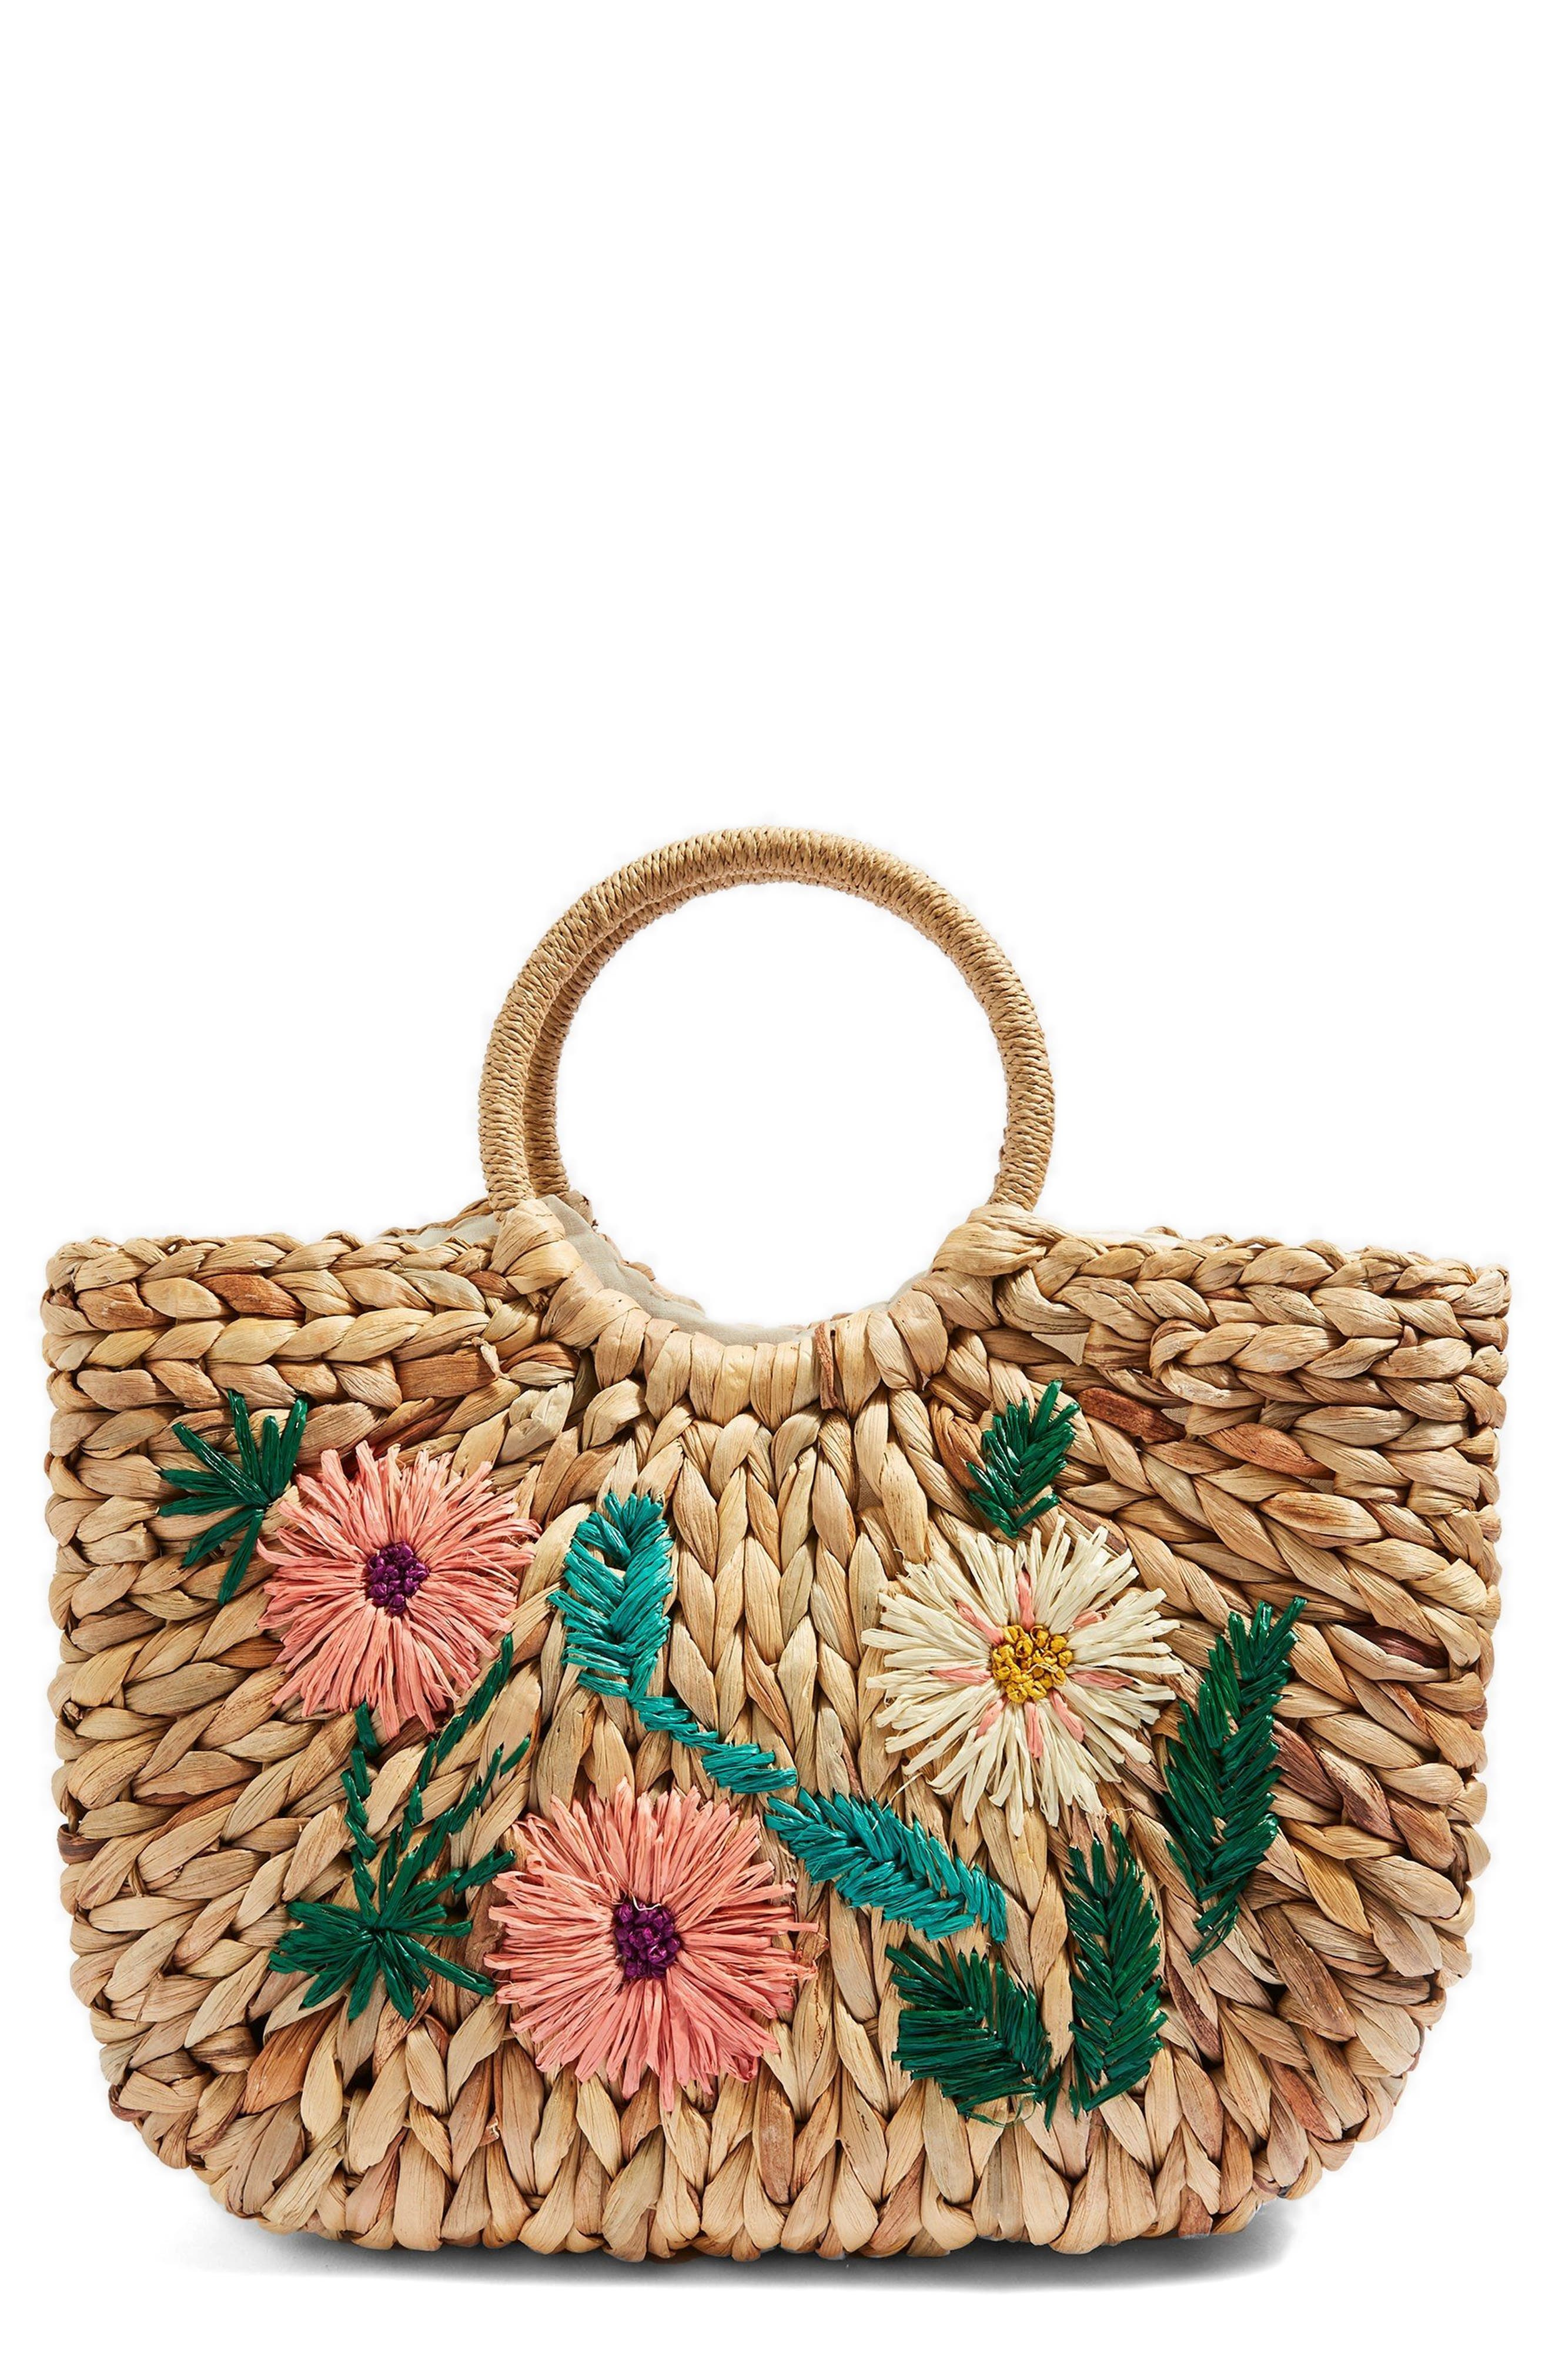 Beverly Floral Embroidered Straw Tote Bag,                         Main,                         color, 250